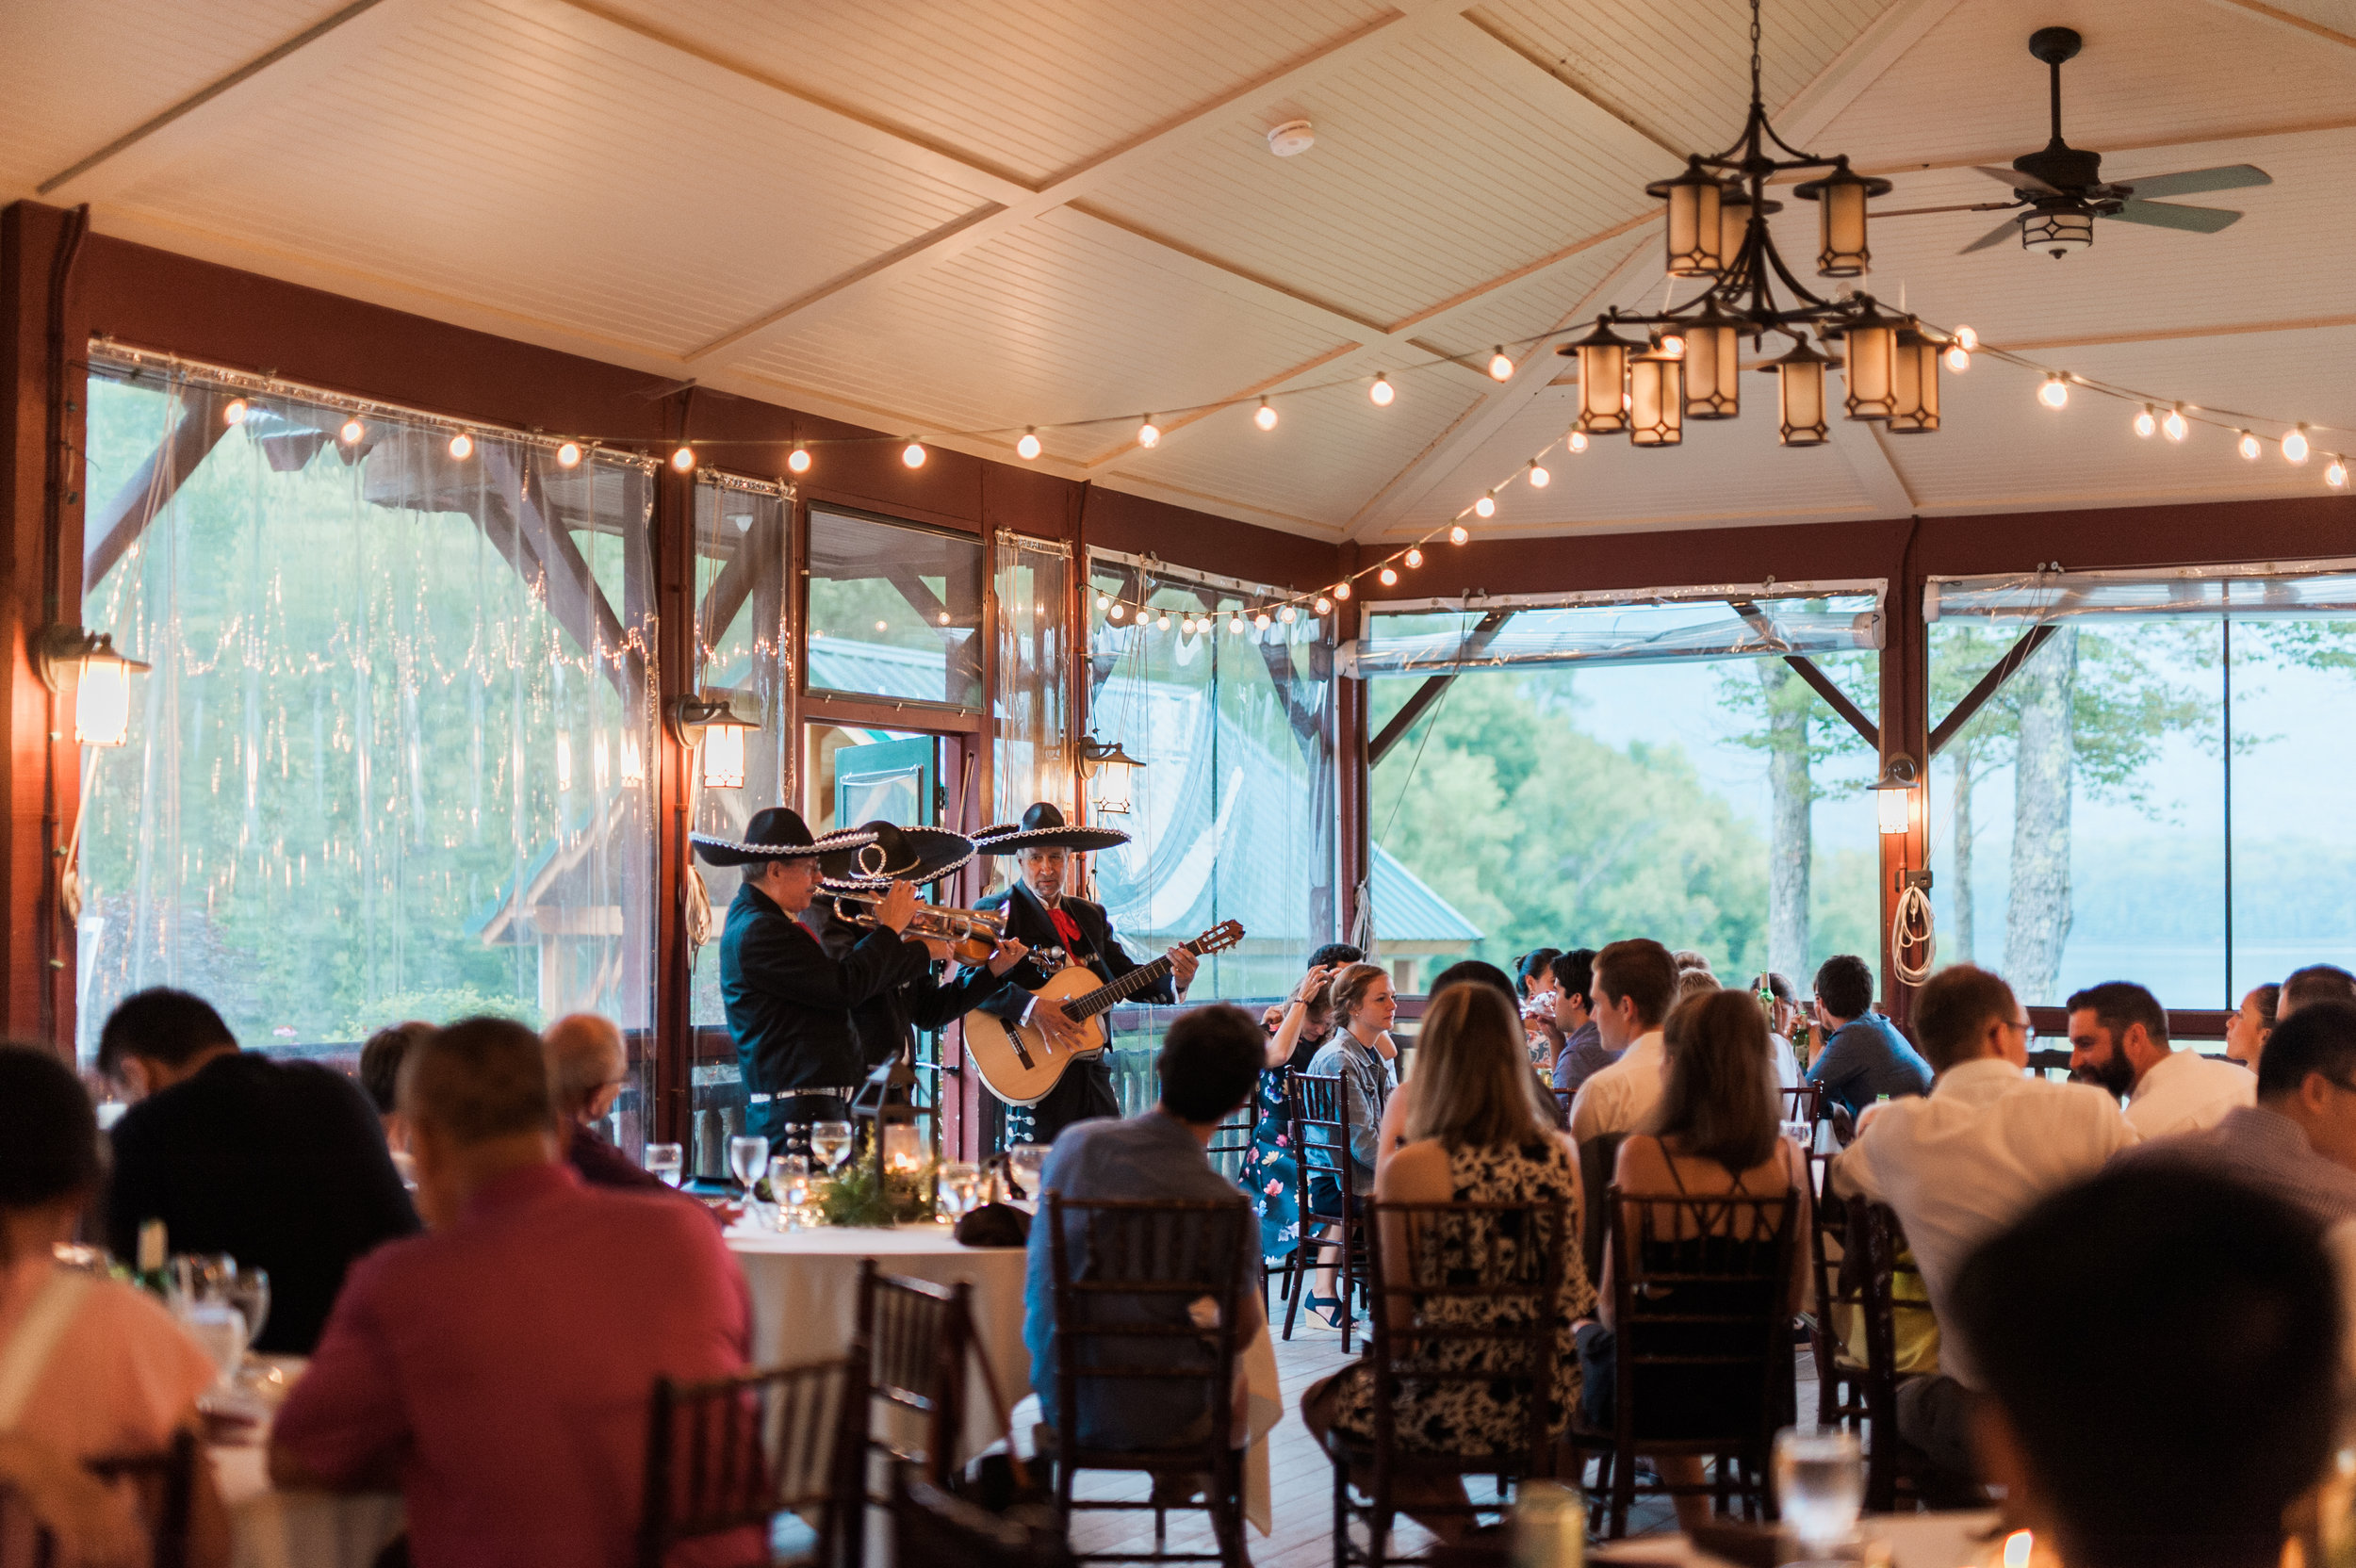 Surprise mariachi band performance during rehearsal dinner